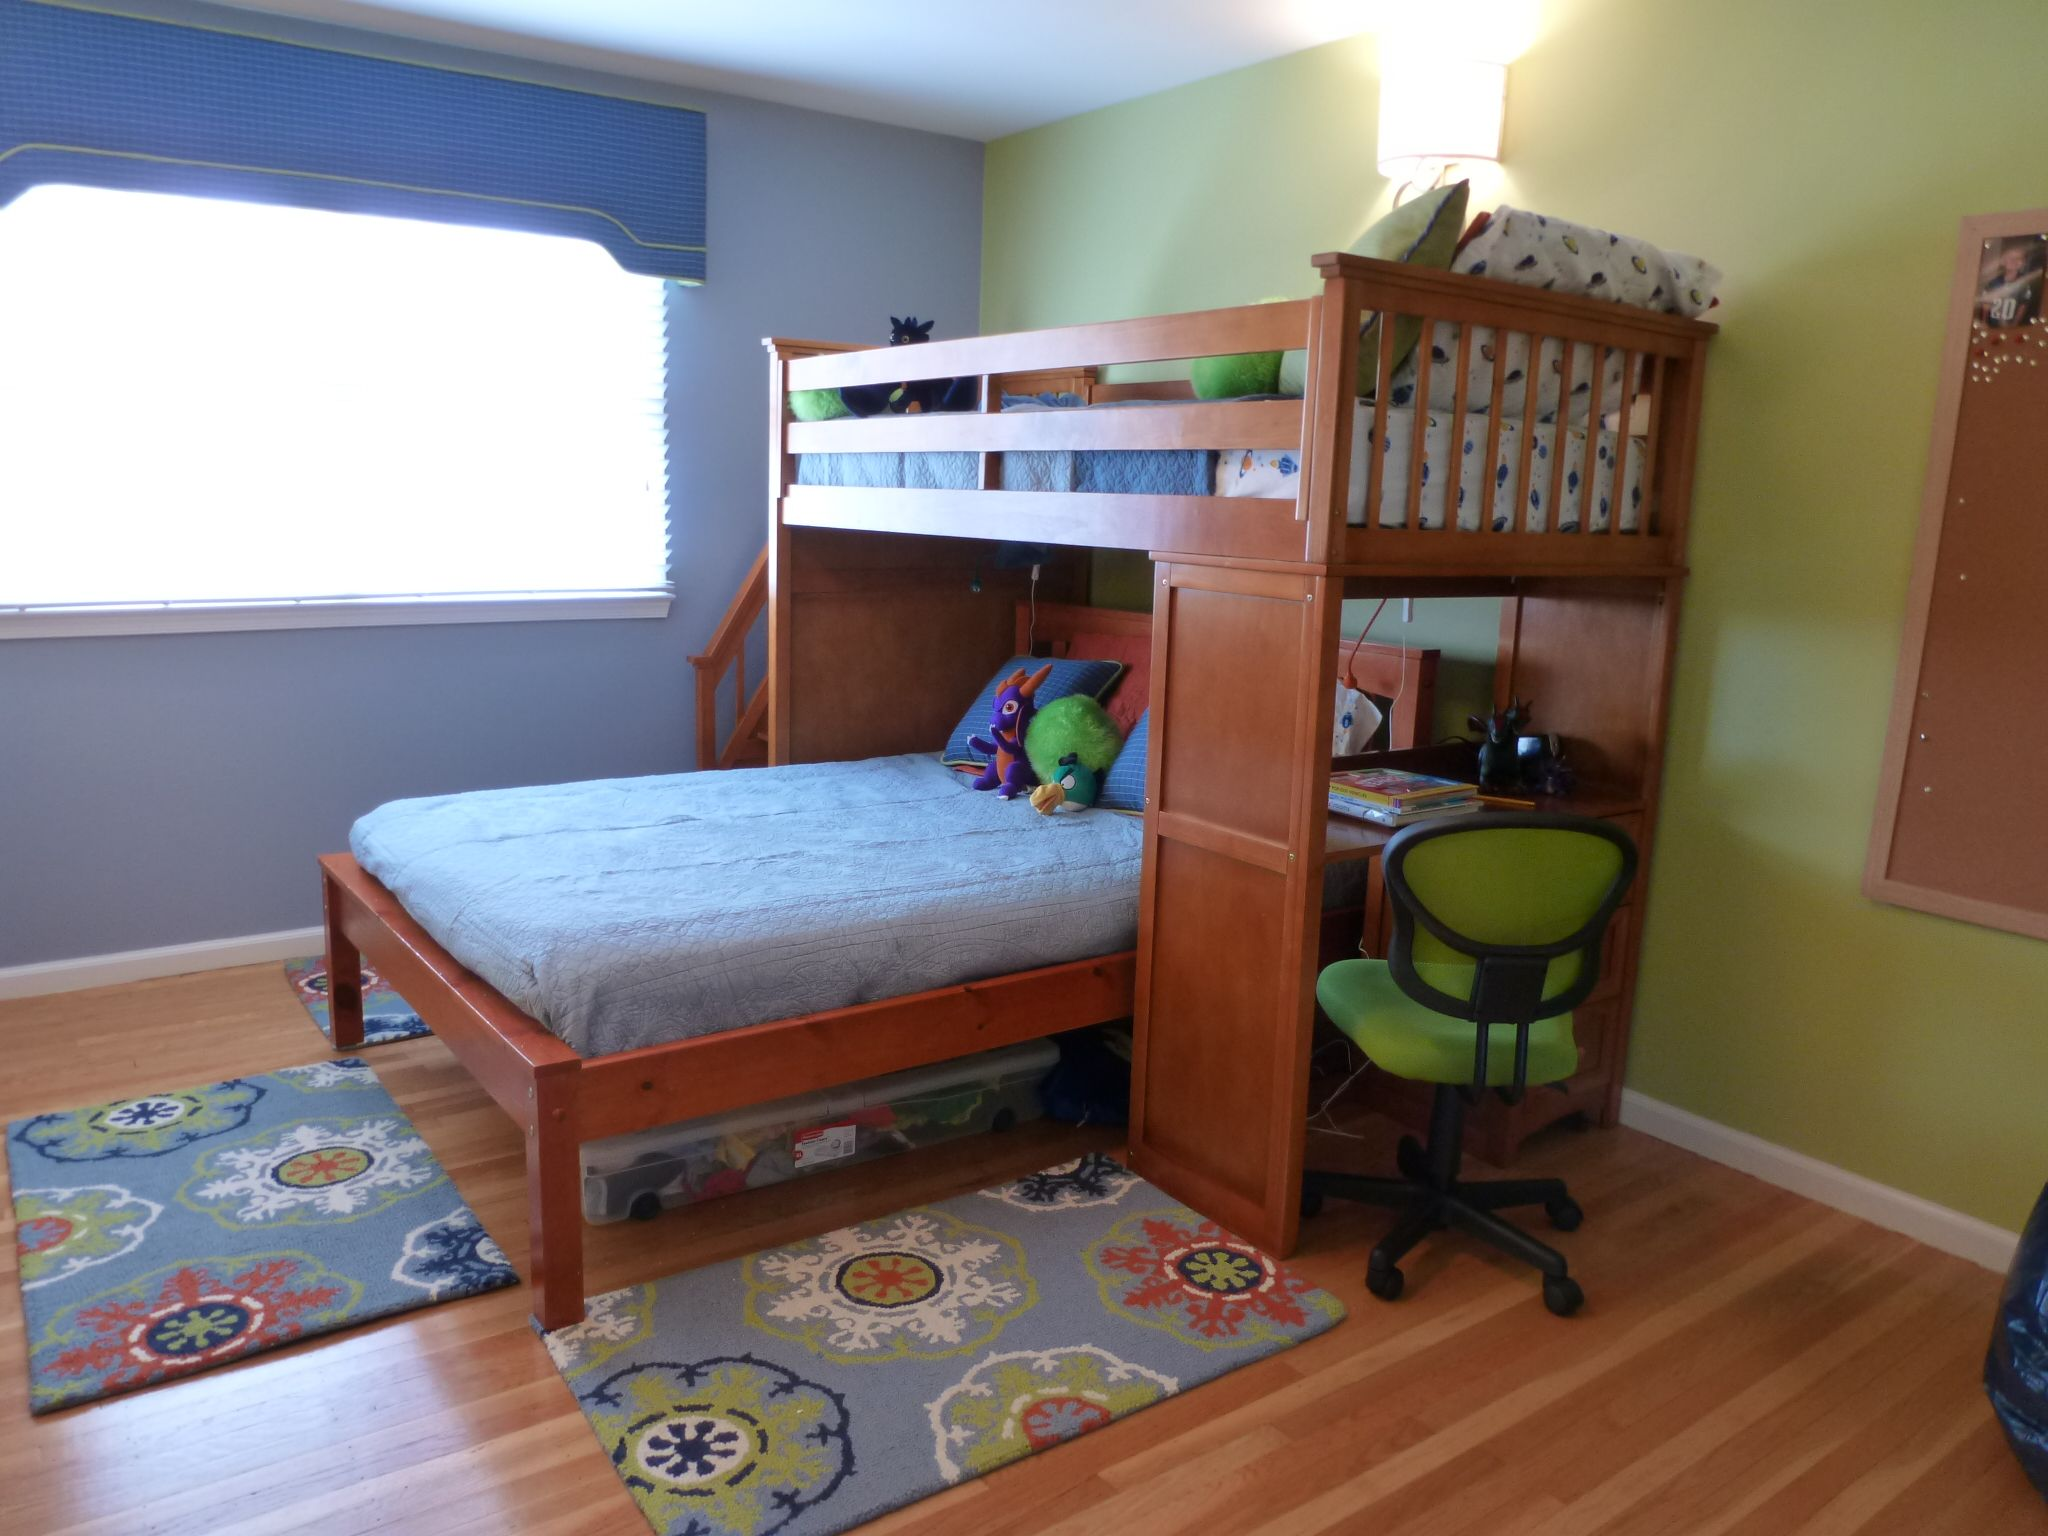 A little boyus room with loft bed in Blue u Green I like the idea